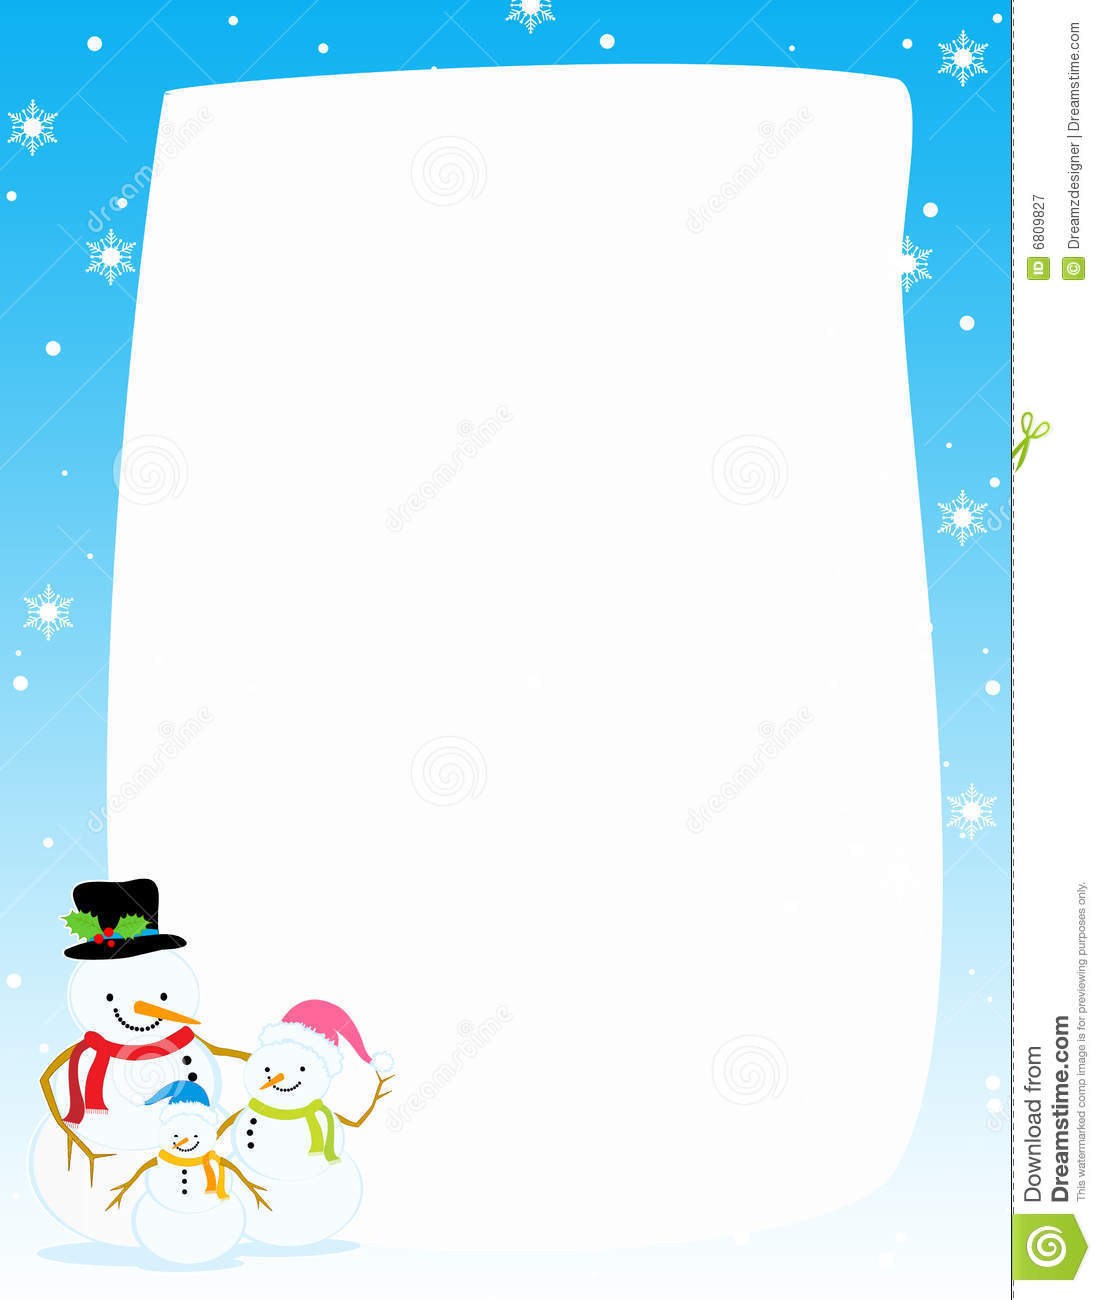 snowman christmas   winter border royalty free stock Vacation Clip Art Borders Travel Clip Art